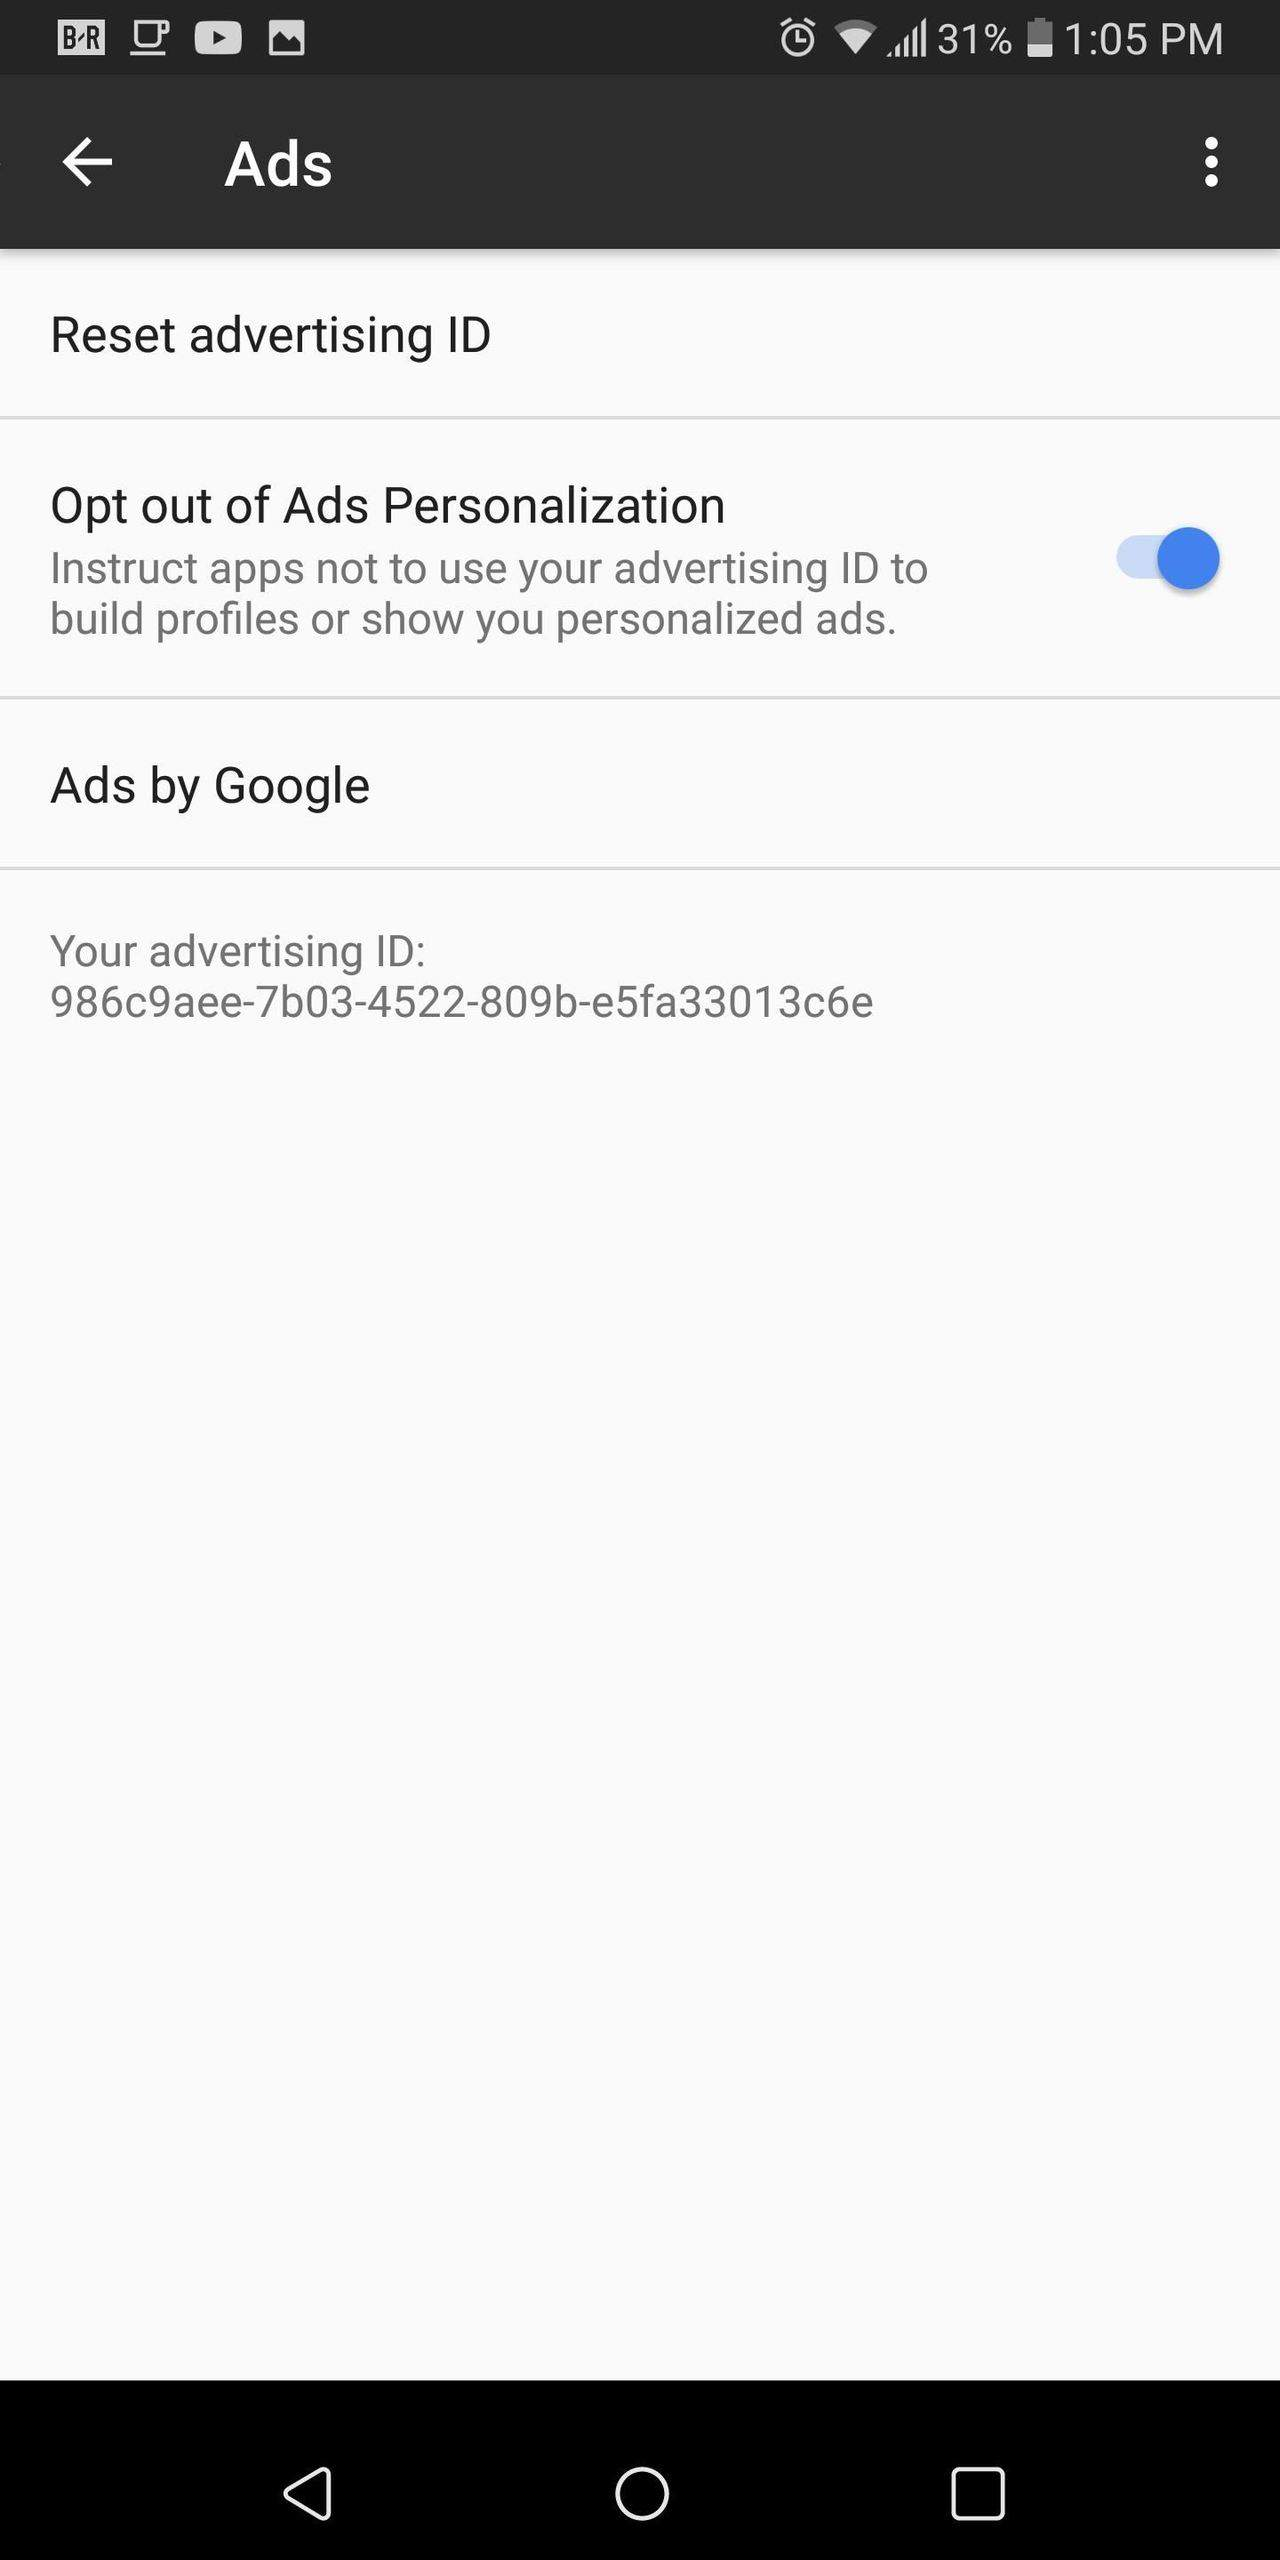 opt out of ad tracking on Android